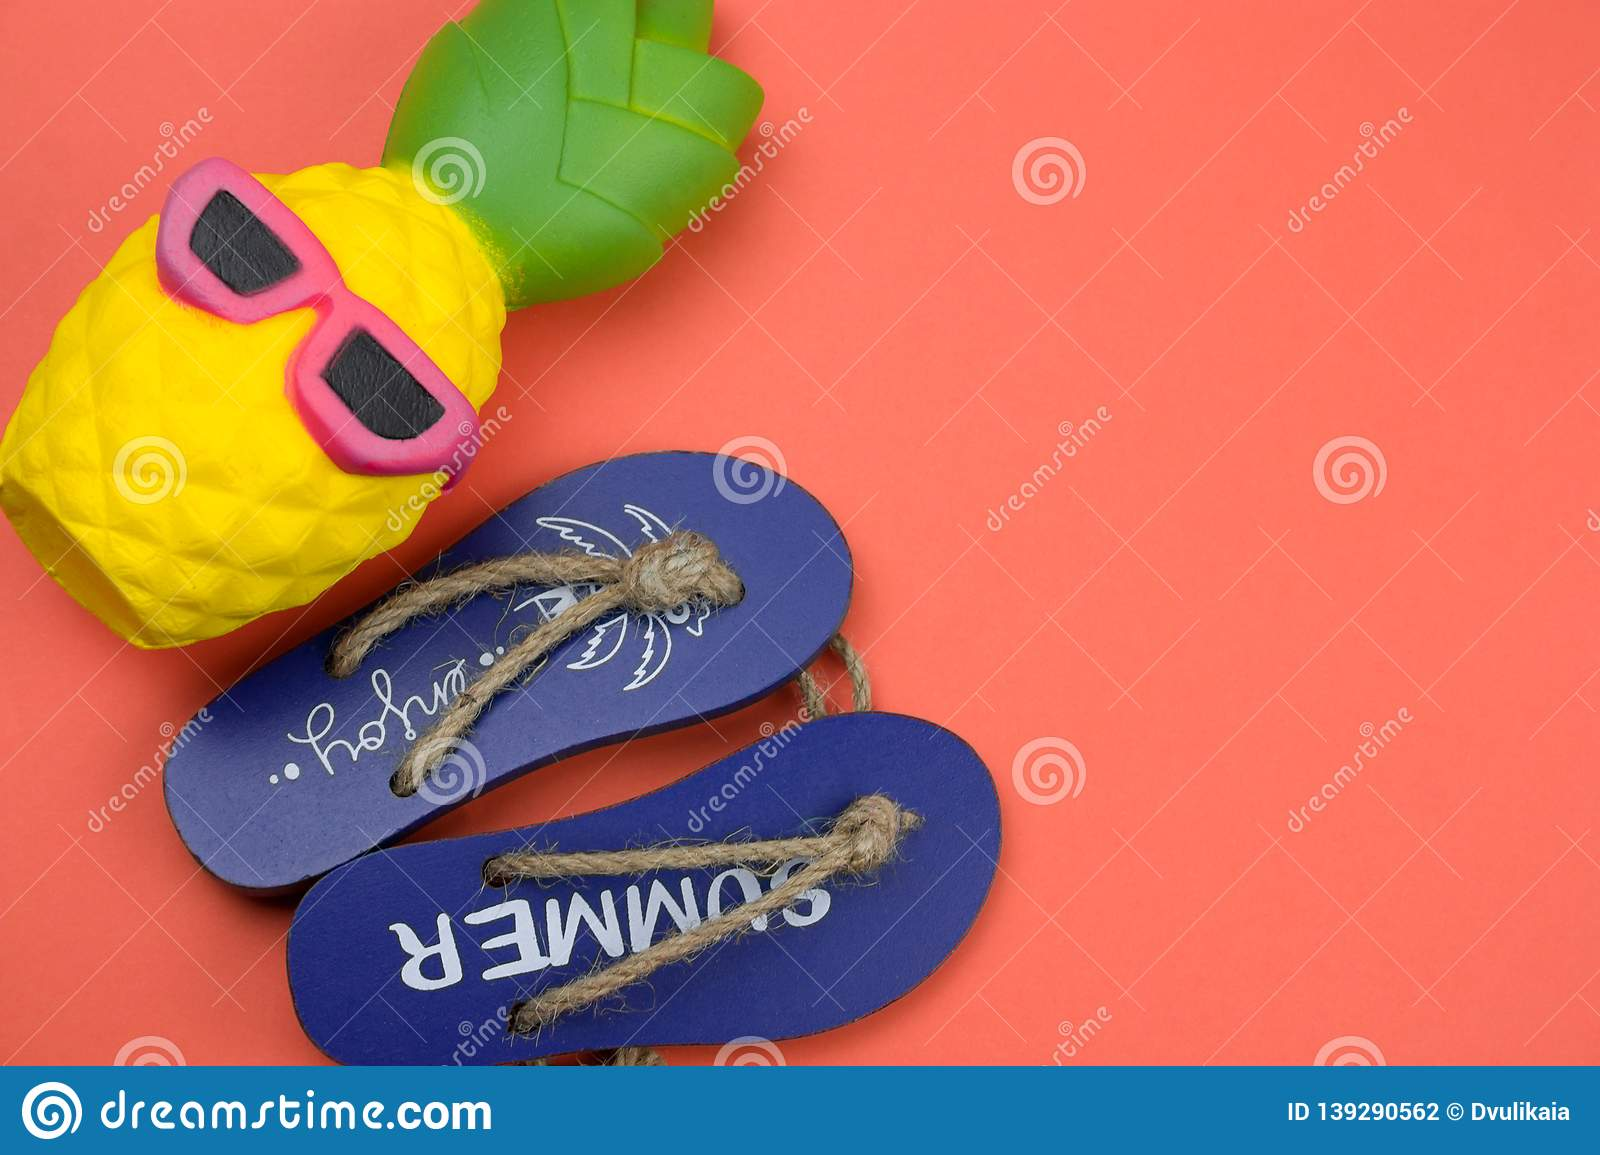 2e2cc76a434 decorative wooden flip flops and squishy toy pineapple on a coral  background copy space